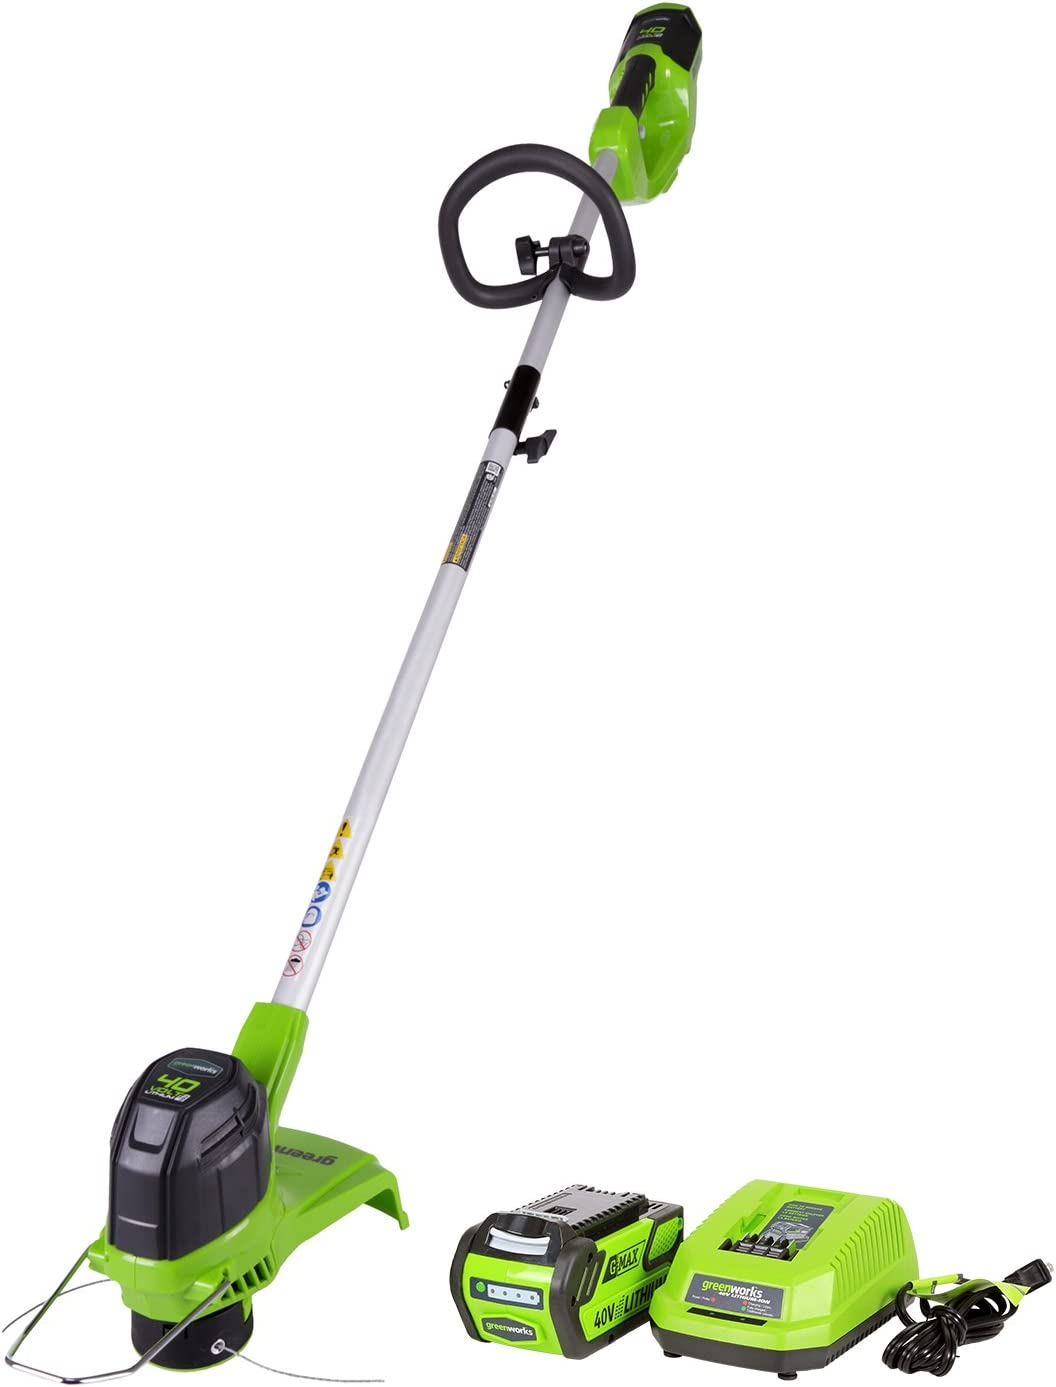 Greenworks 12-Inch 40V Cordless String Trimmer